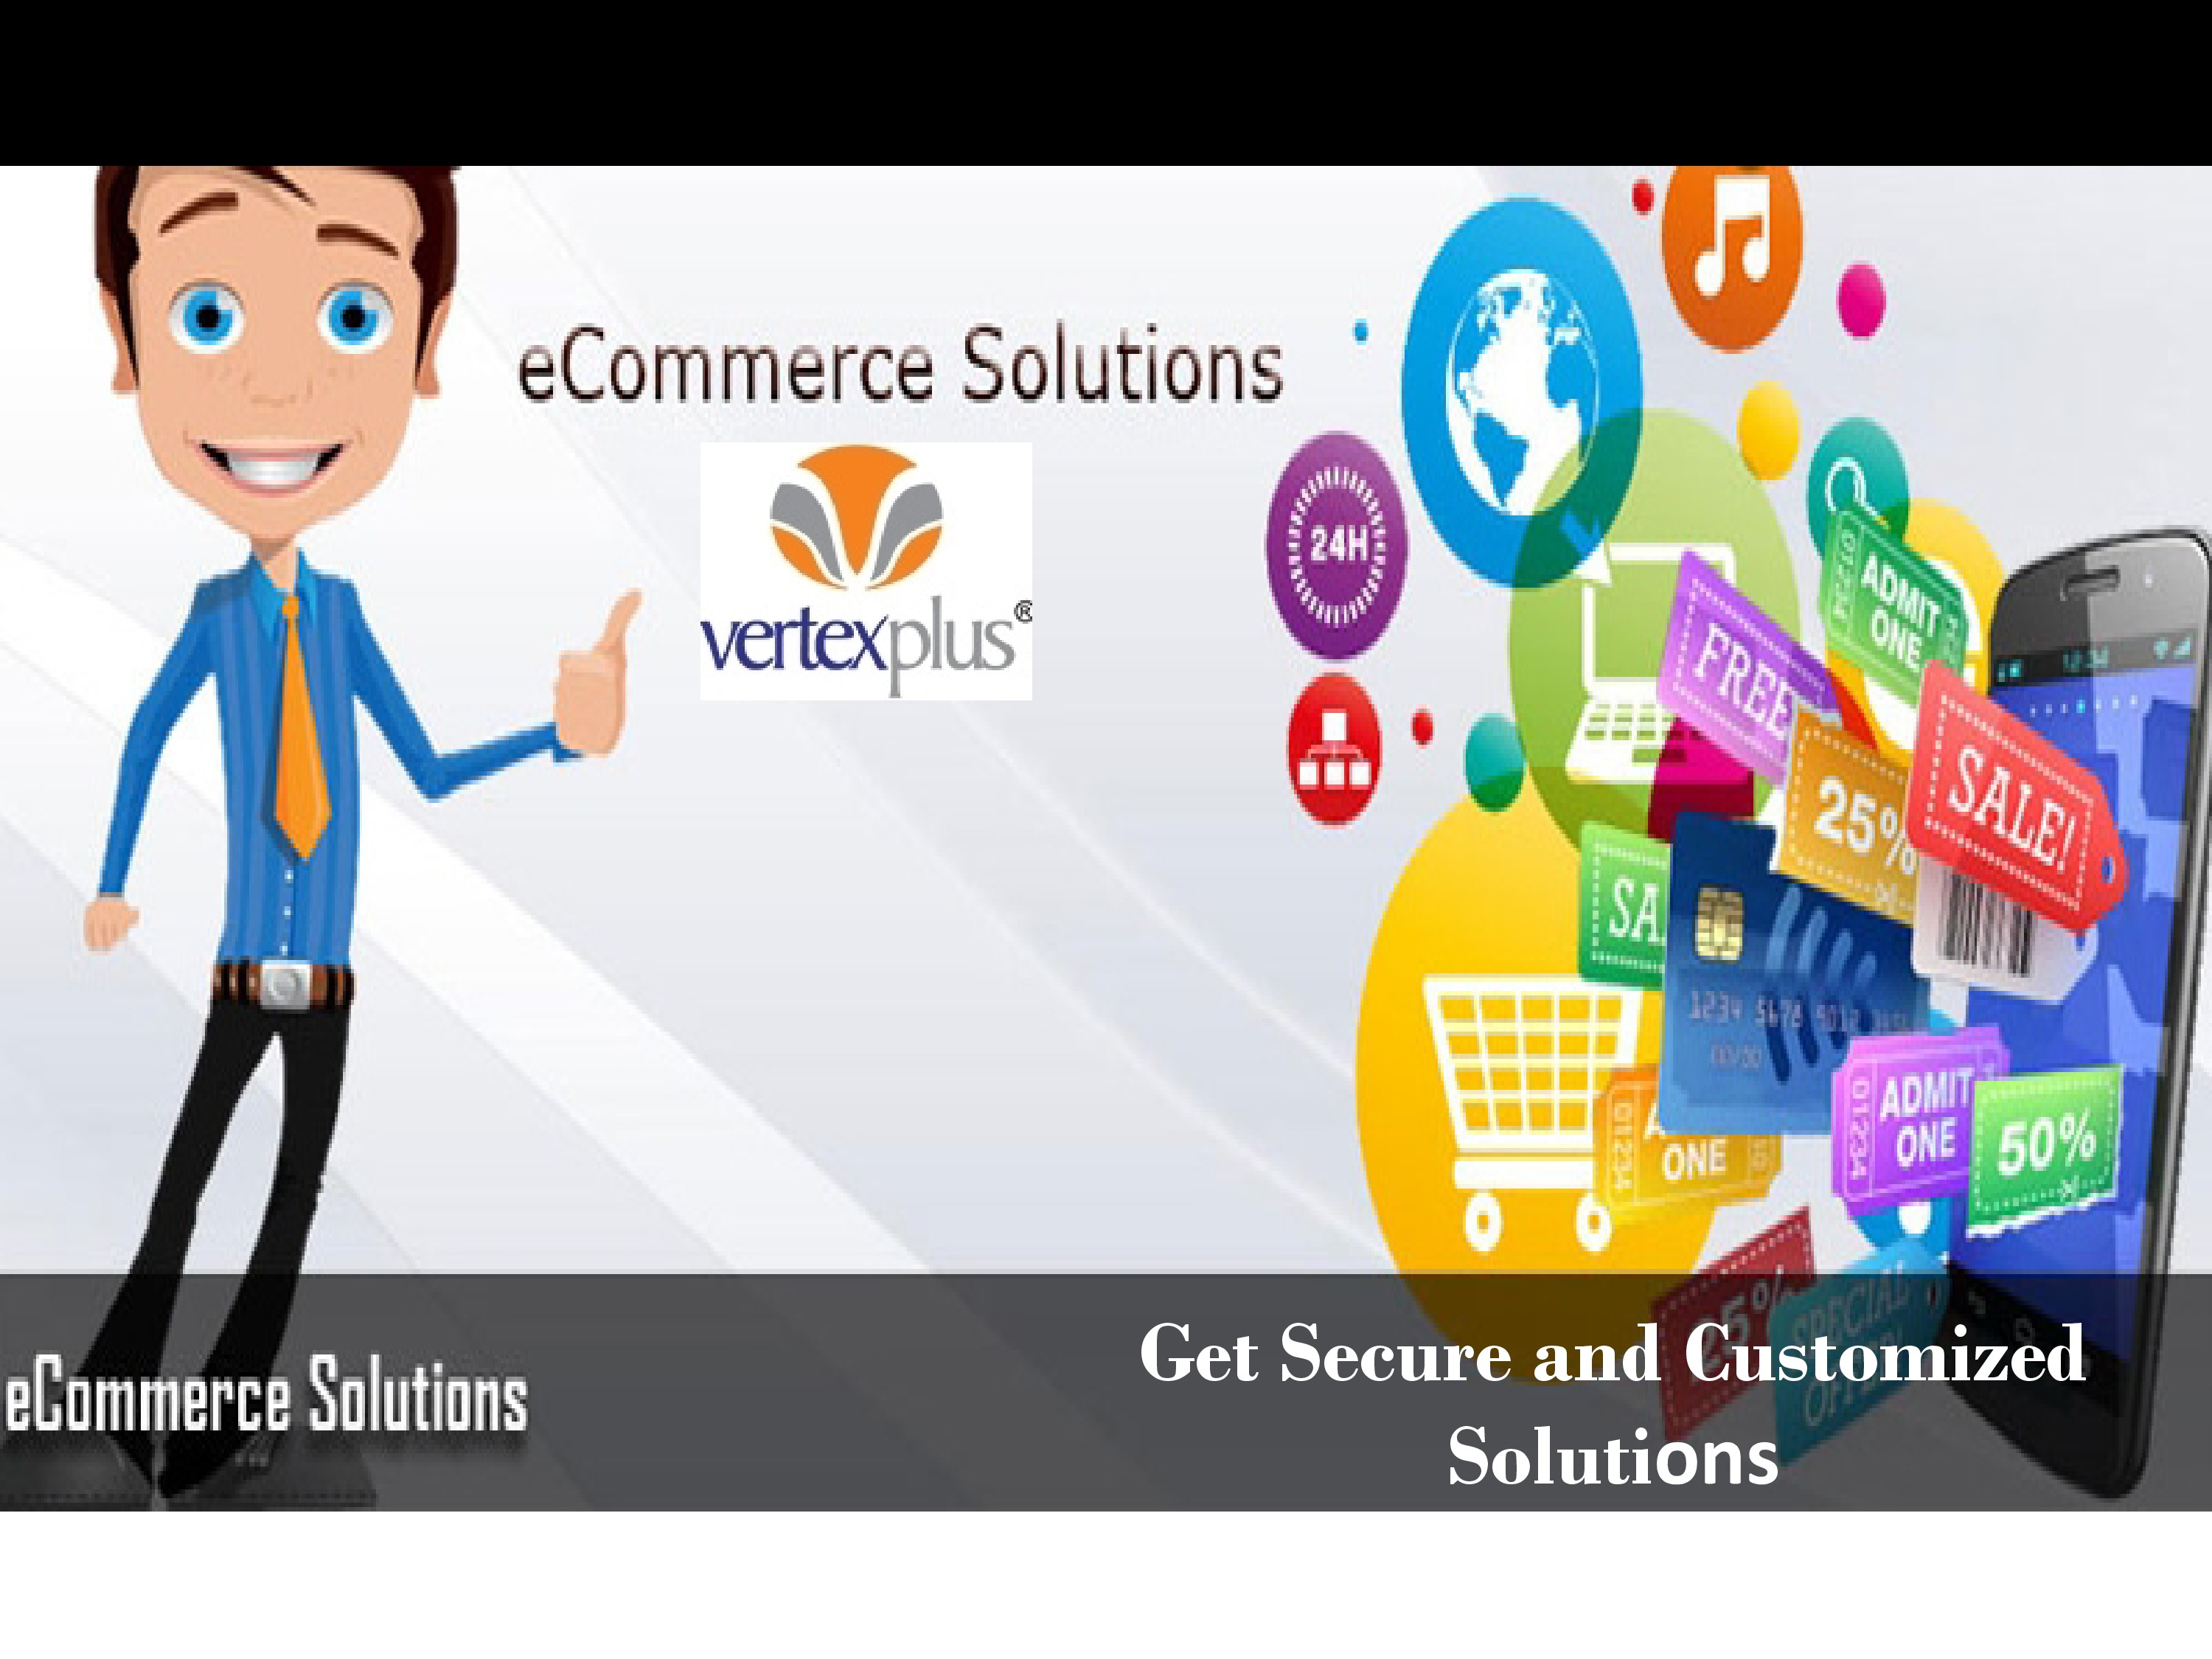 eCommerce Solutions.jpg To know more details eCommerce Development Services, visit http://www.vertexplus.com/e-commerce-solutions.  by vertexplus